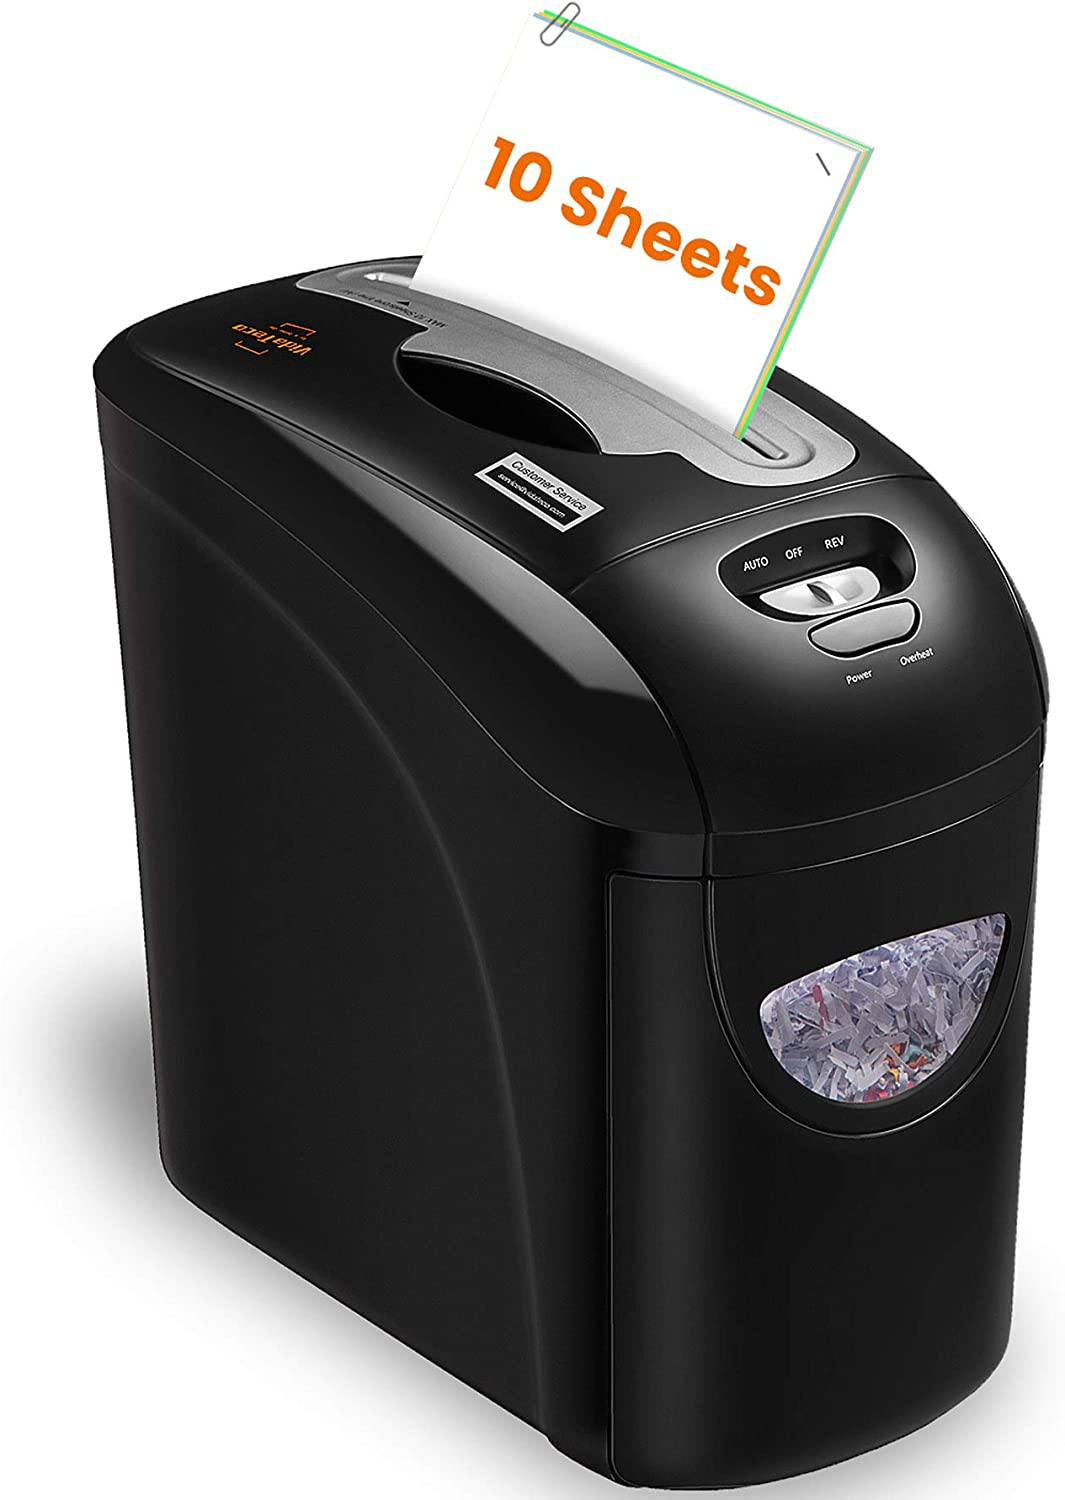 Paper Shredder, VidaTeco 10-Sheet Micro-Cut Shredder with US Patented Cutter, Superior Security Level P-4, Card/Paper Shredder for Home Office with Jam Proof System, 2.65-Gallon Pull Out Basket(ETL)